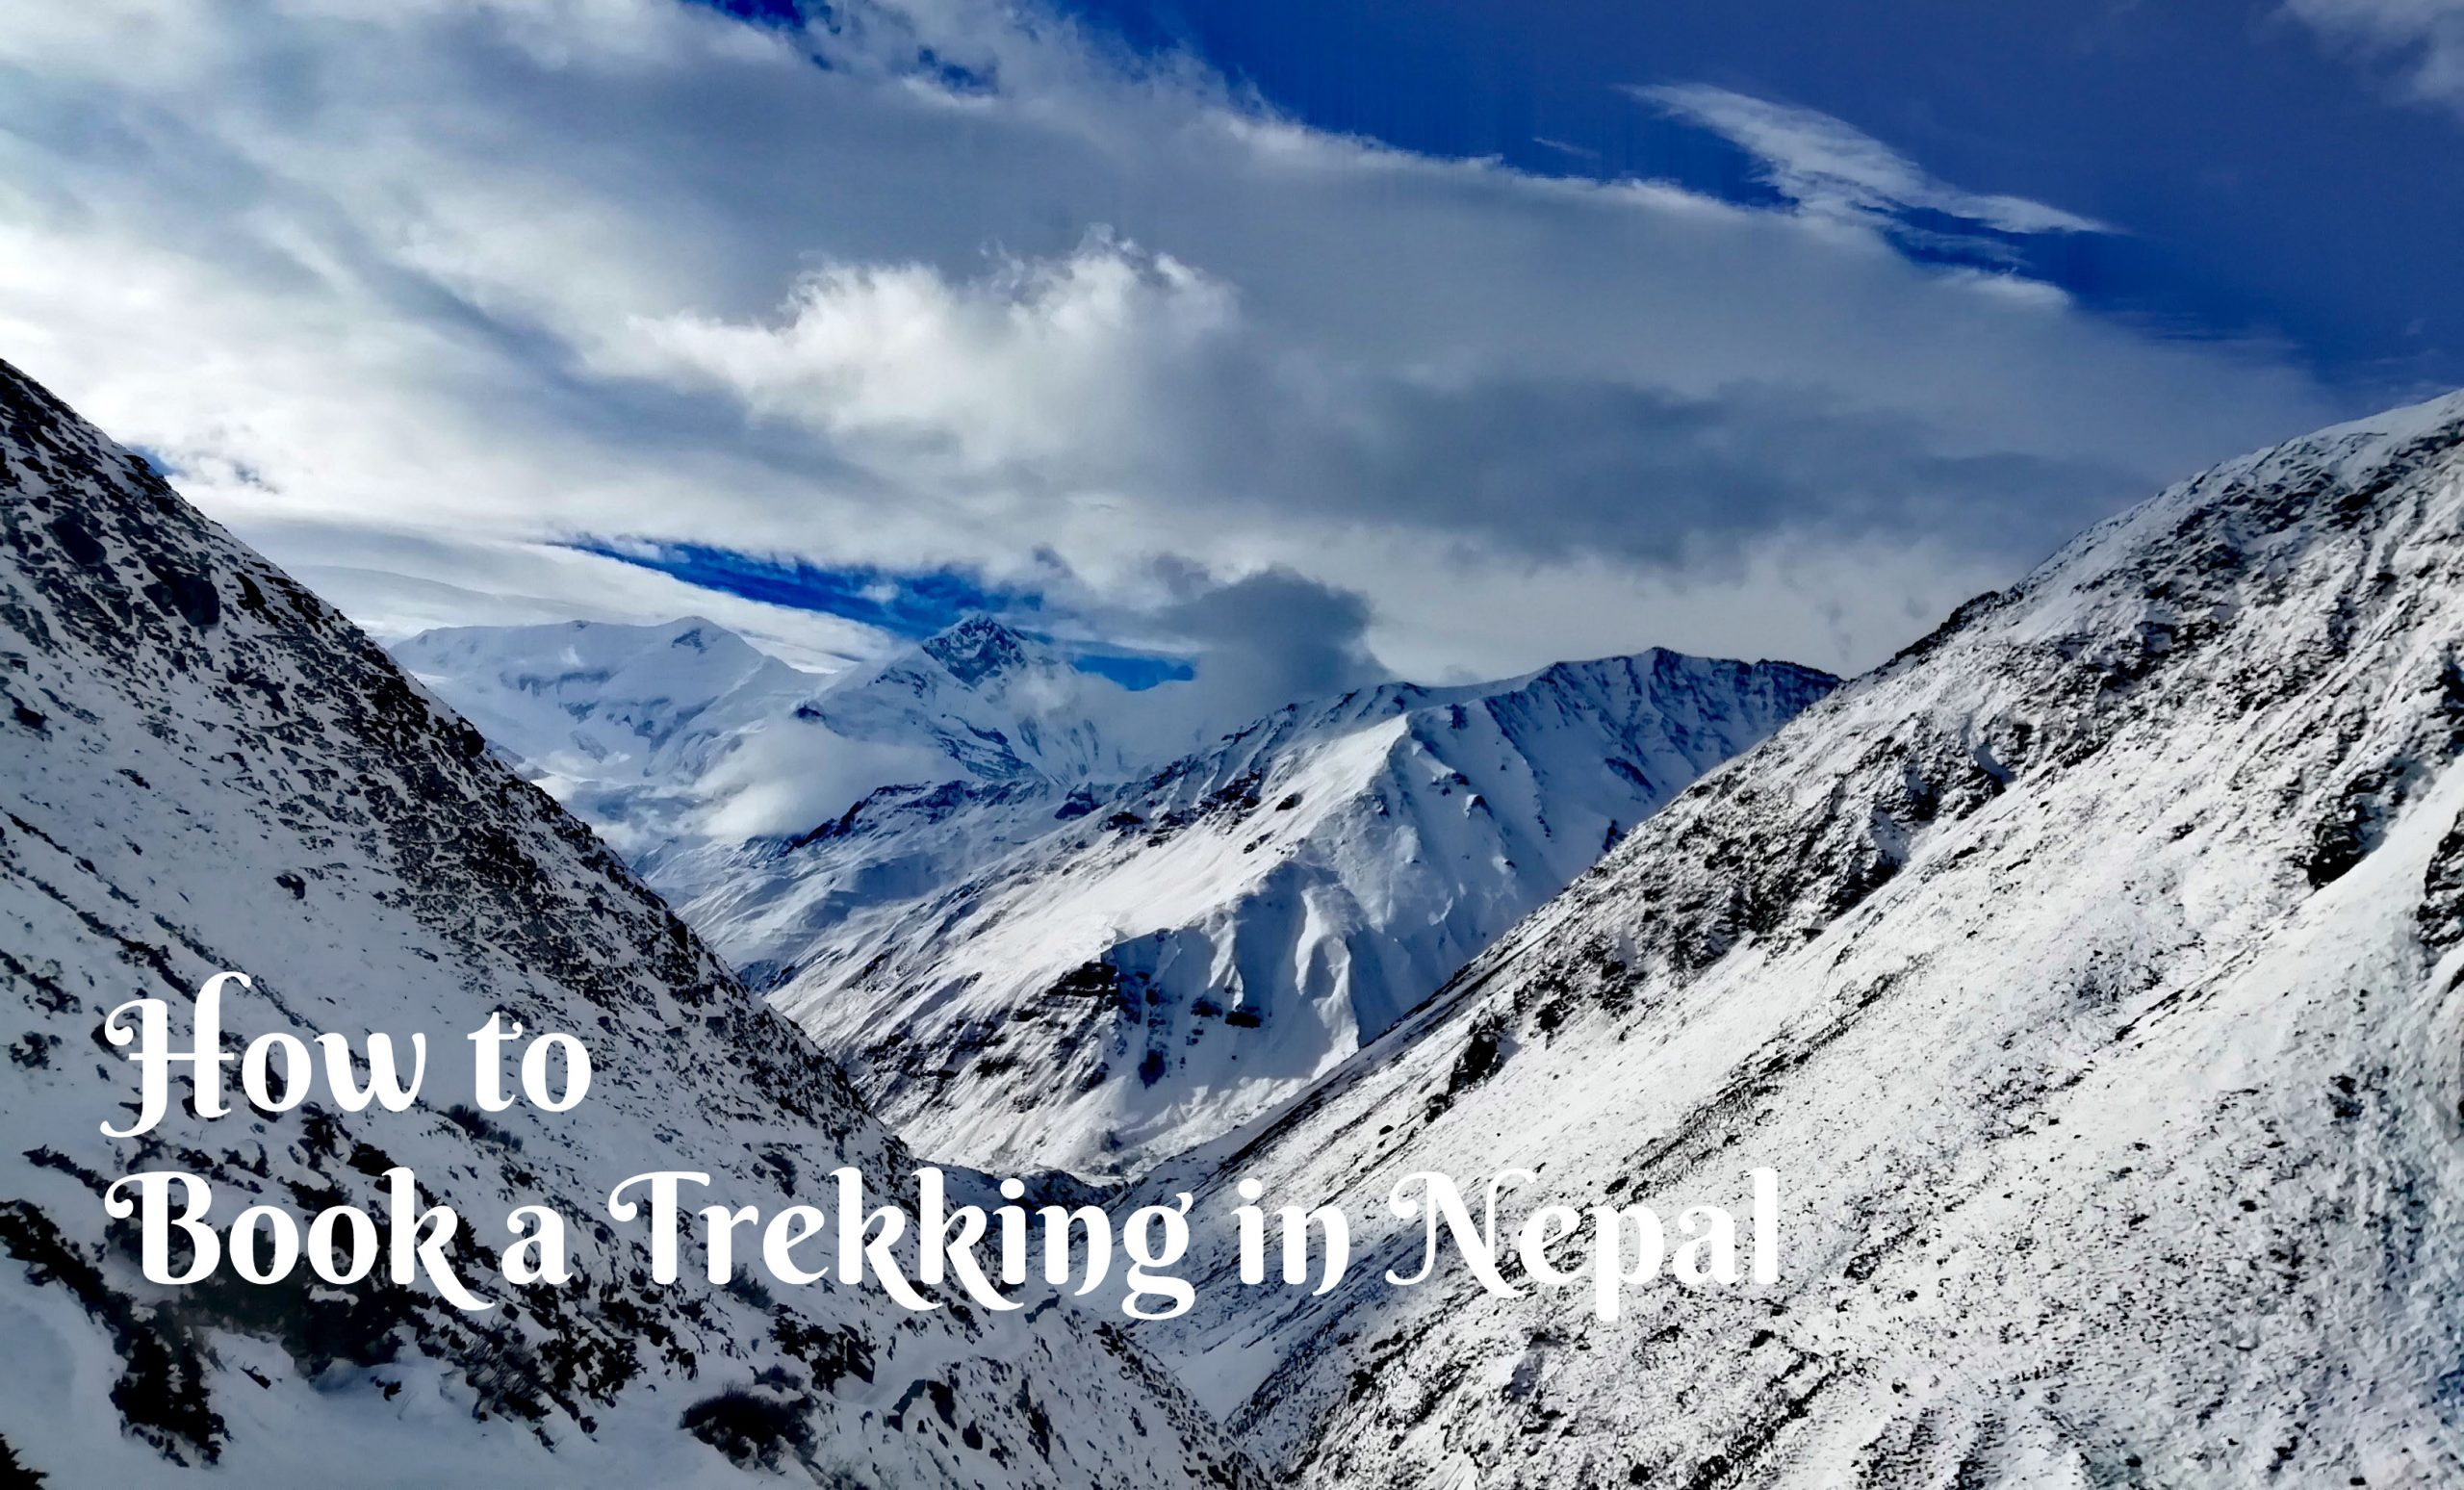 How to book a trekking in Nepal